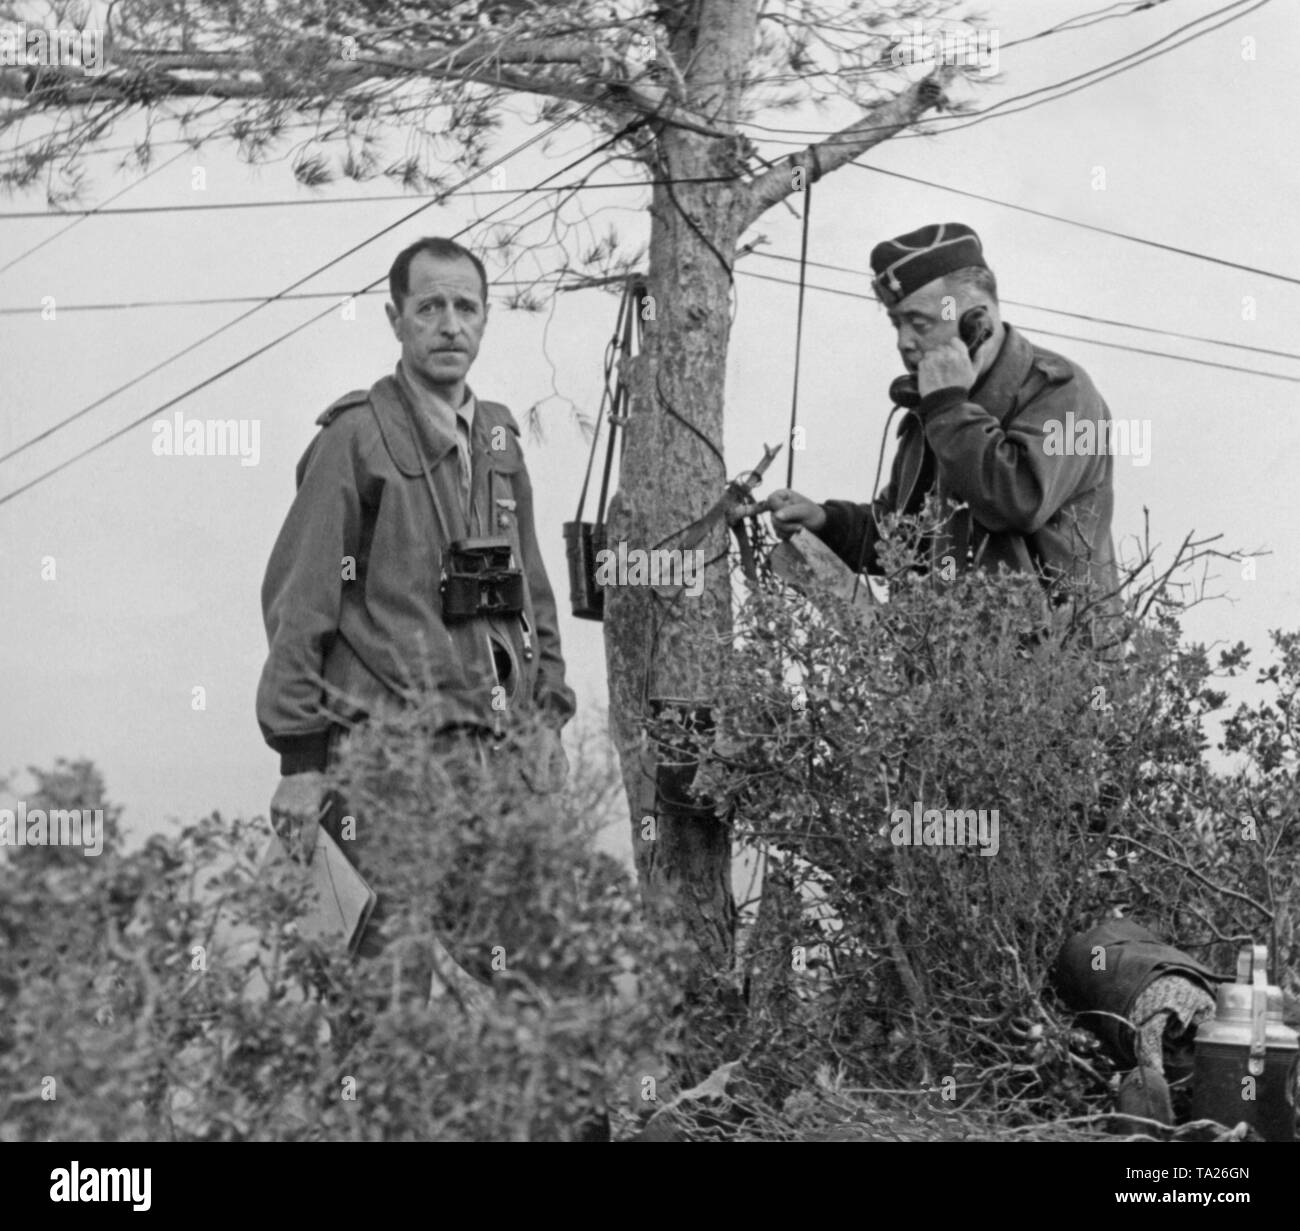 Photoof two officers of a Spanishnational regiment command post. The officer on the right phones with a field telephone. A spruce serves as a line terminal. - Stock Image